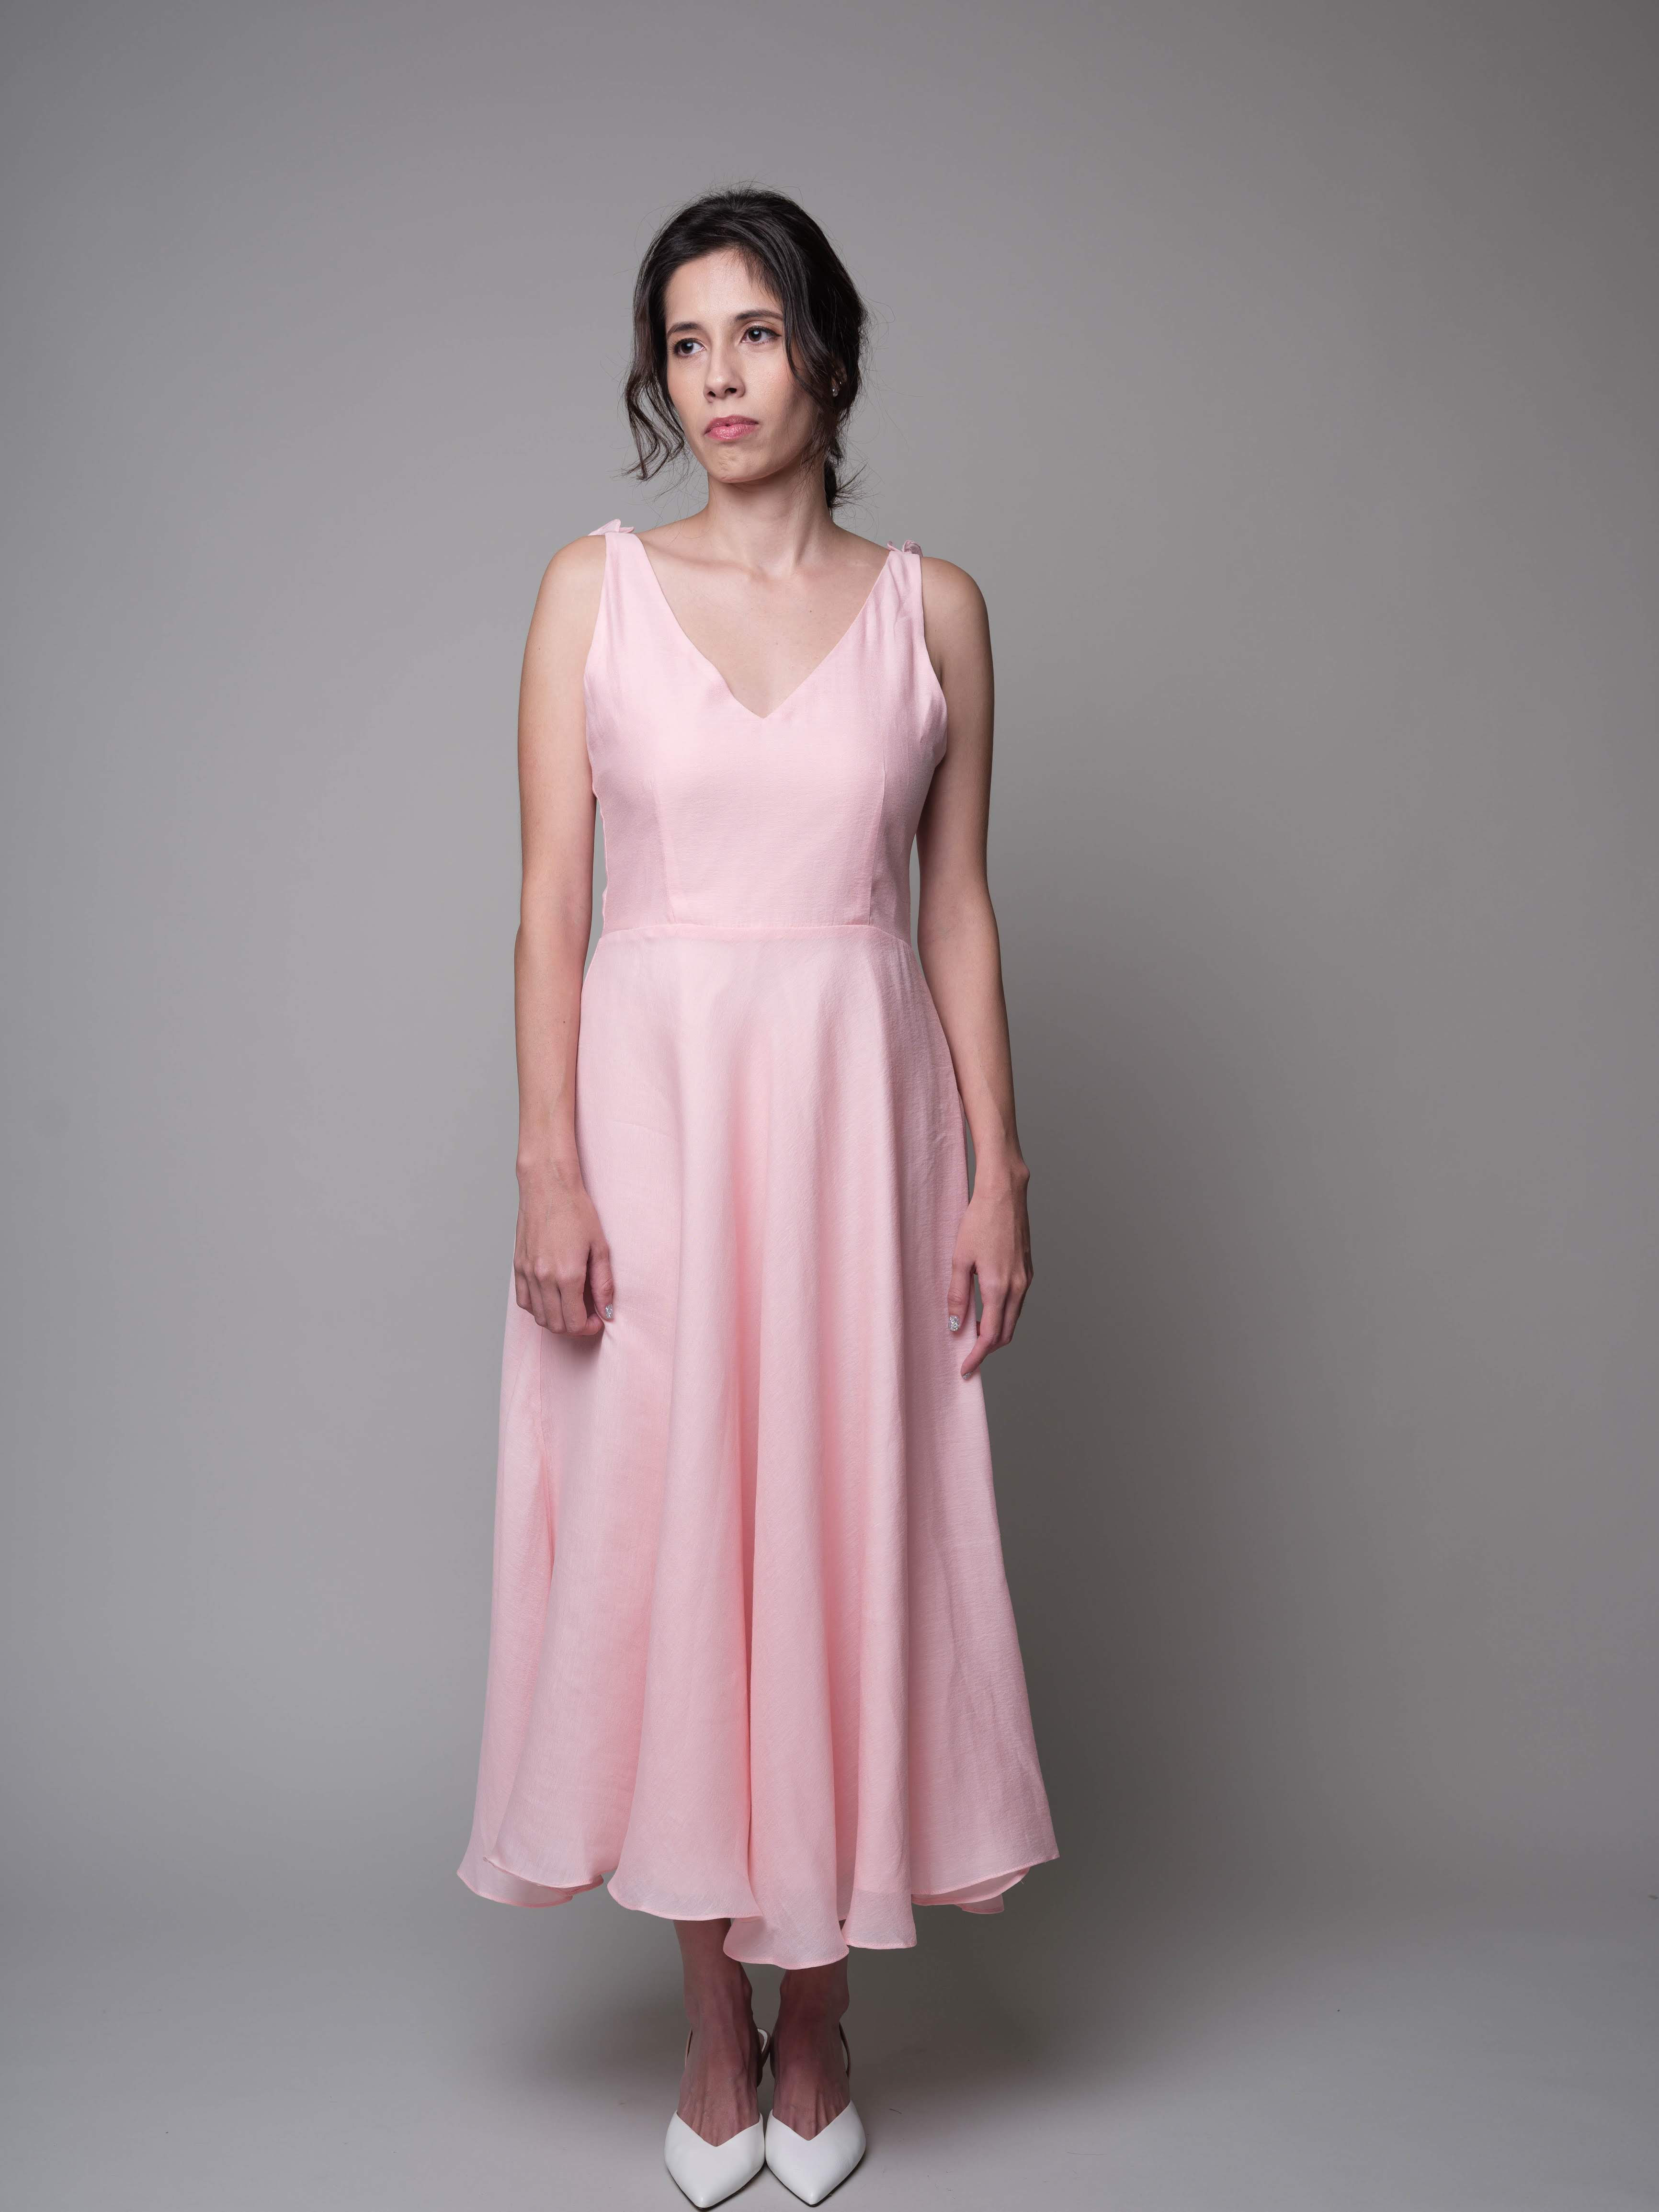 A Lovely Dance V-Neck Dress in Pink - capsulebyedith